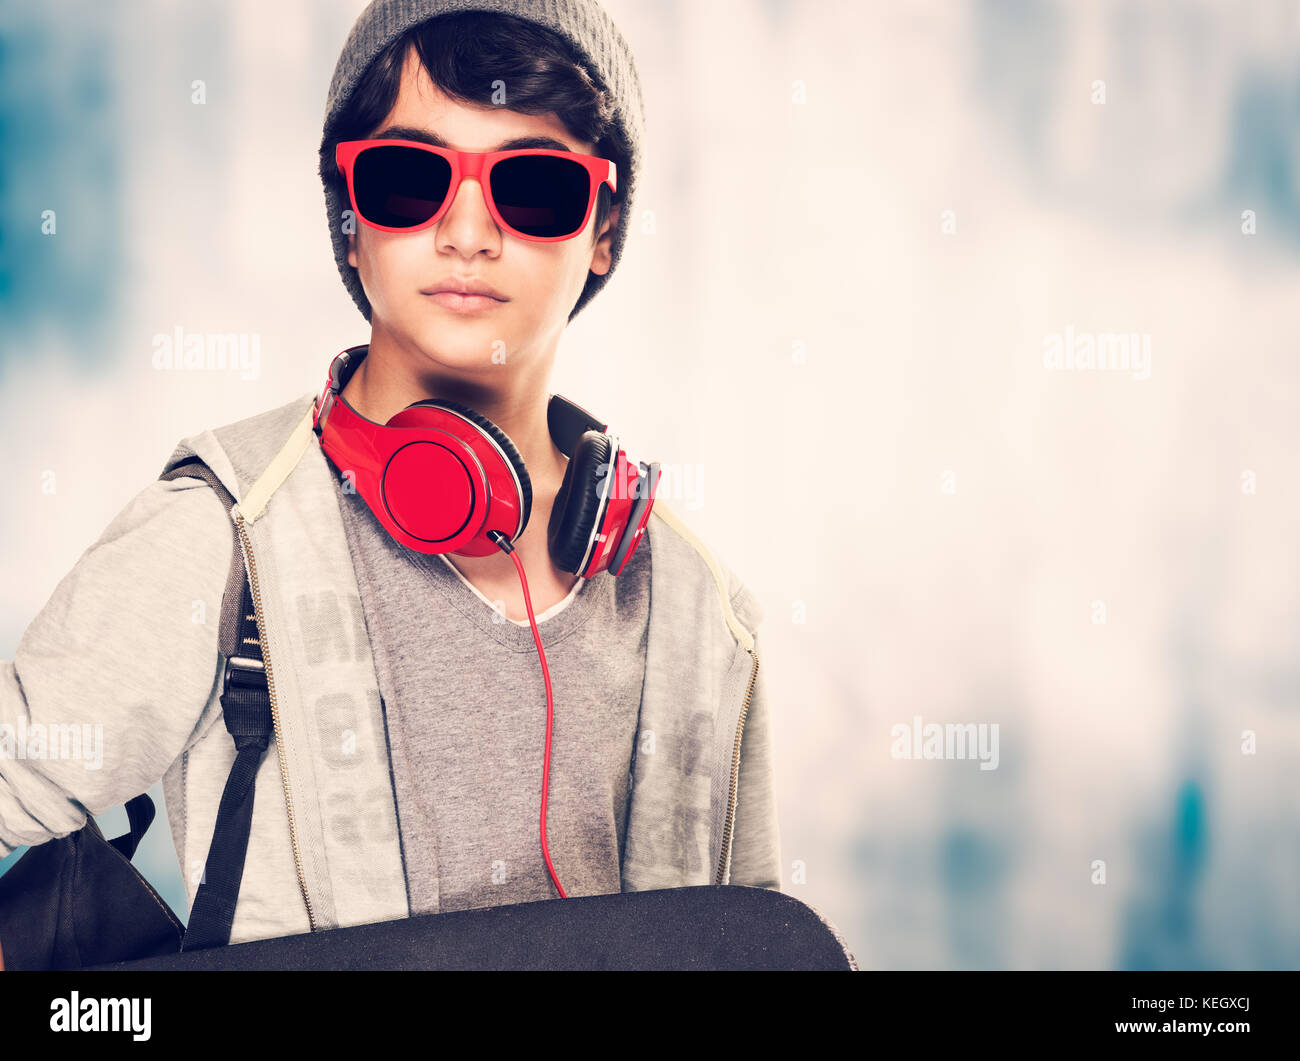 9776a32a61dc Portrait of a stylish teen boy wearing sunglasses and hat holding in hand  skateboard over grunge